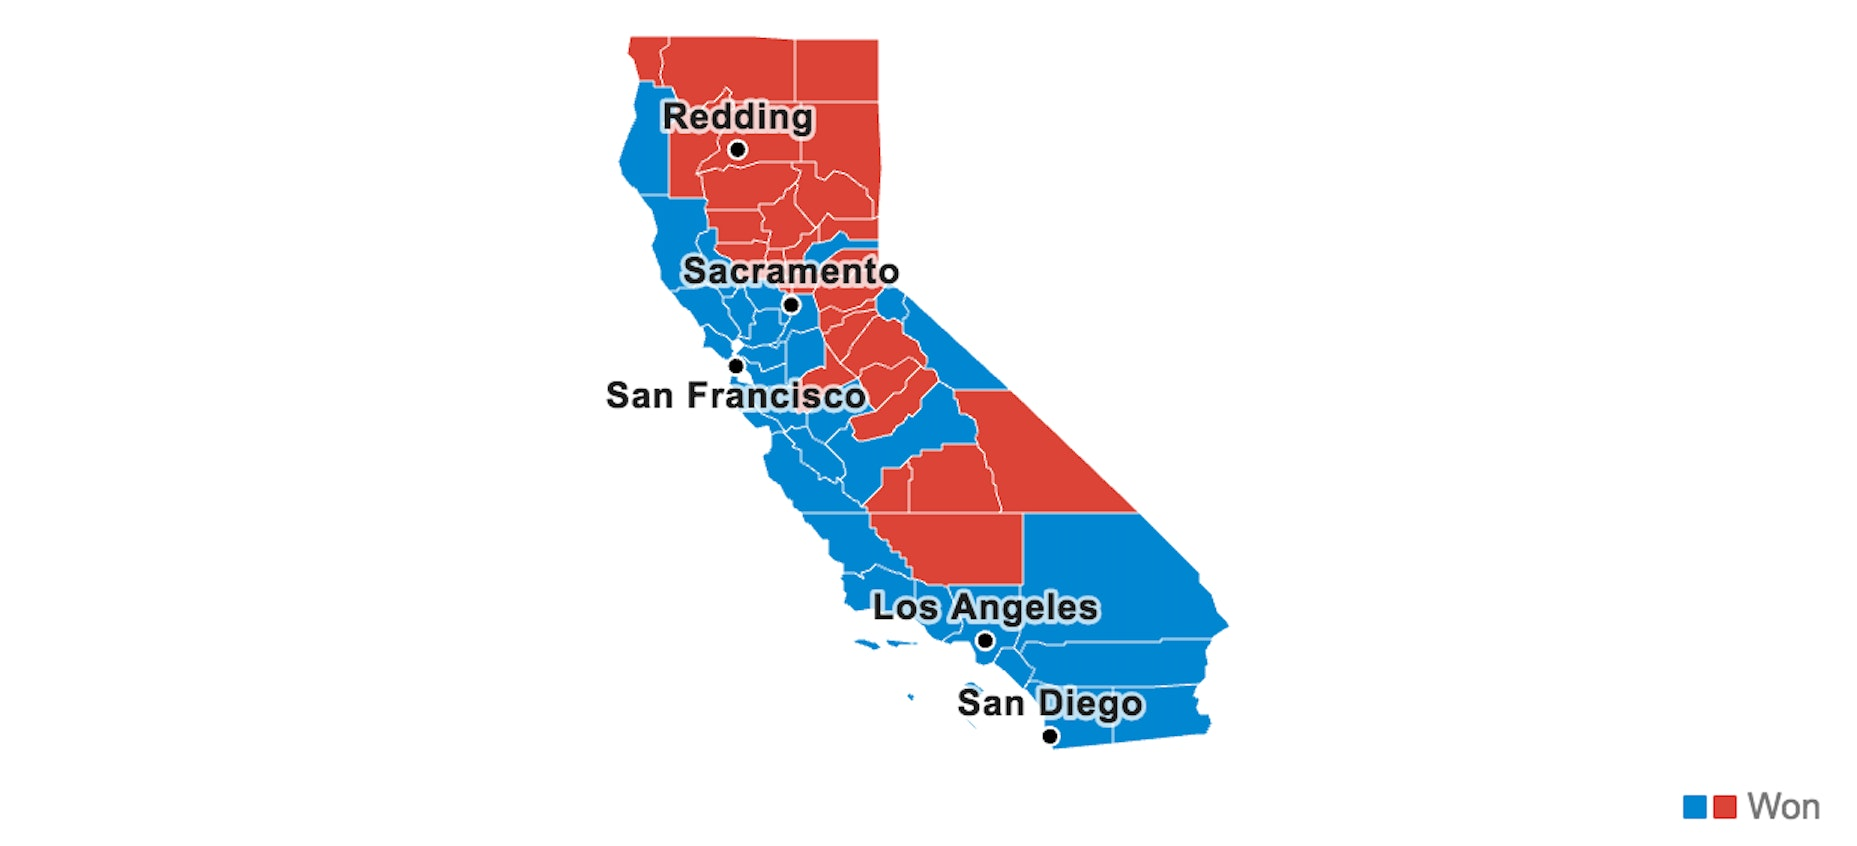 Clinton support in Blue, Trump support in red.